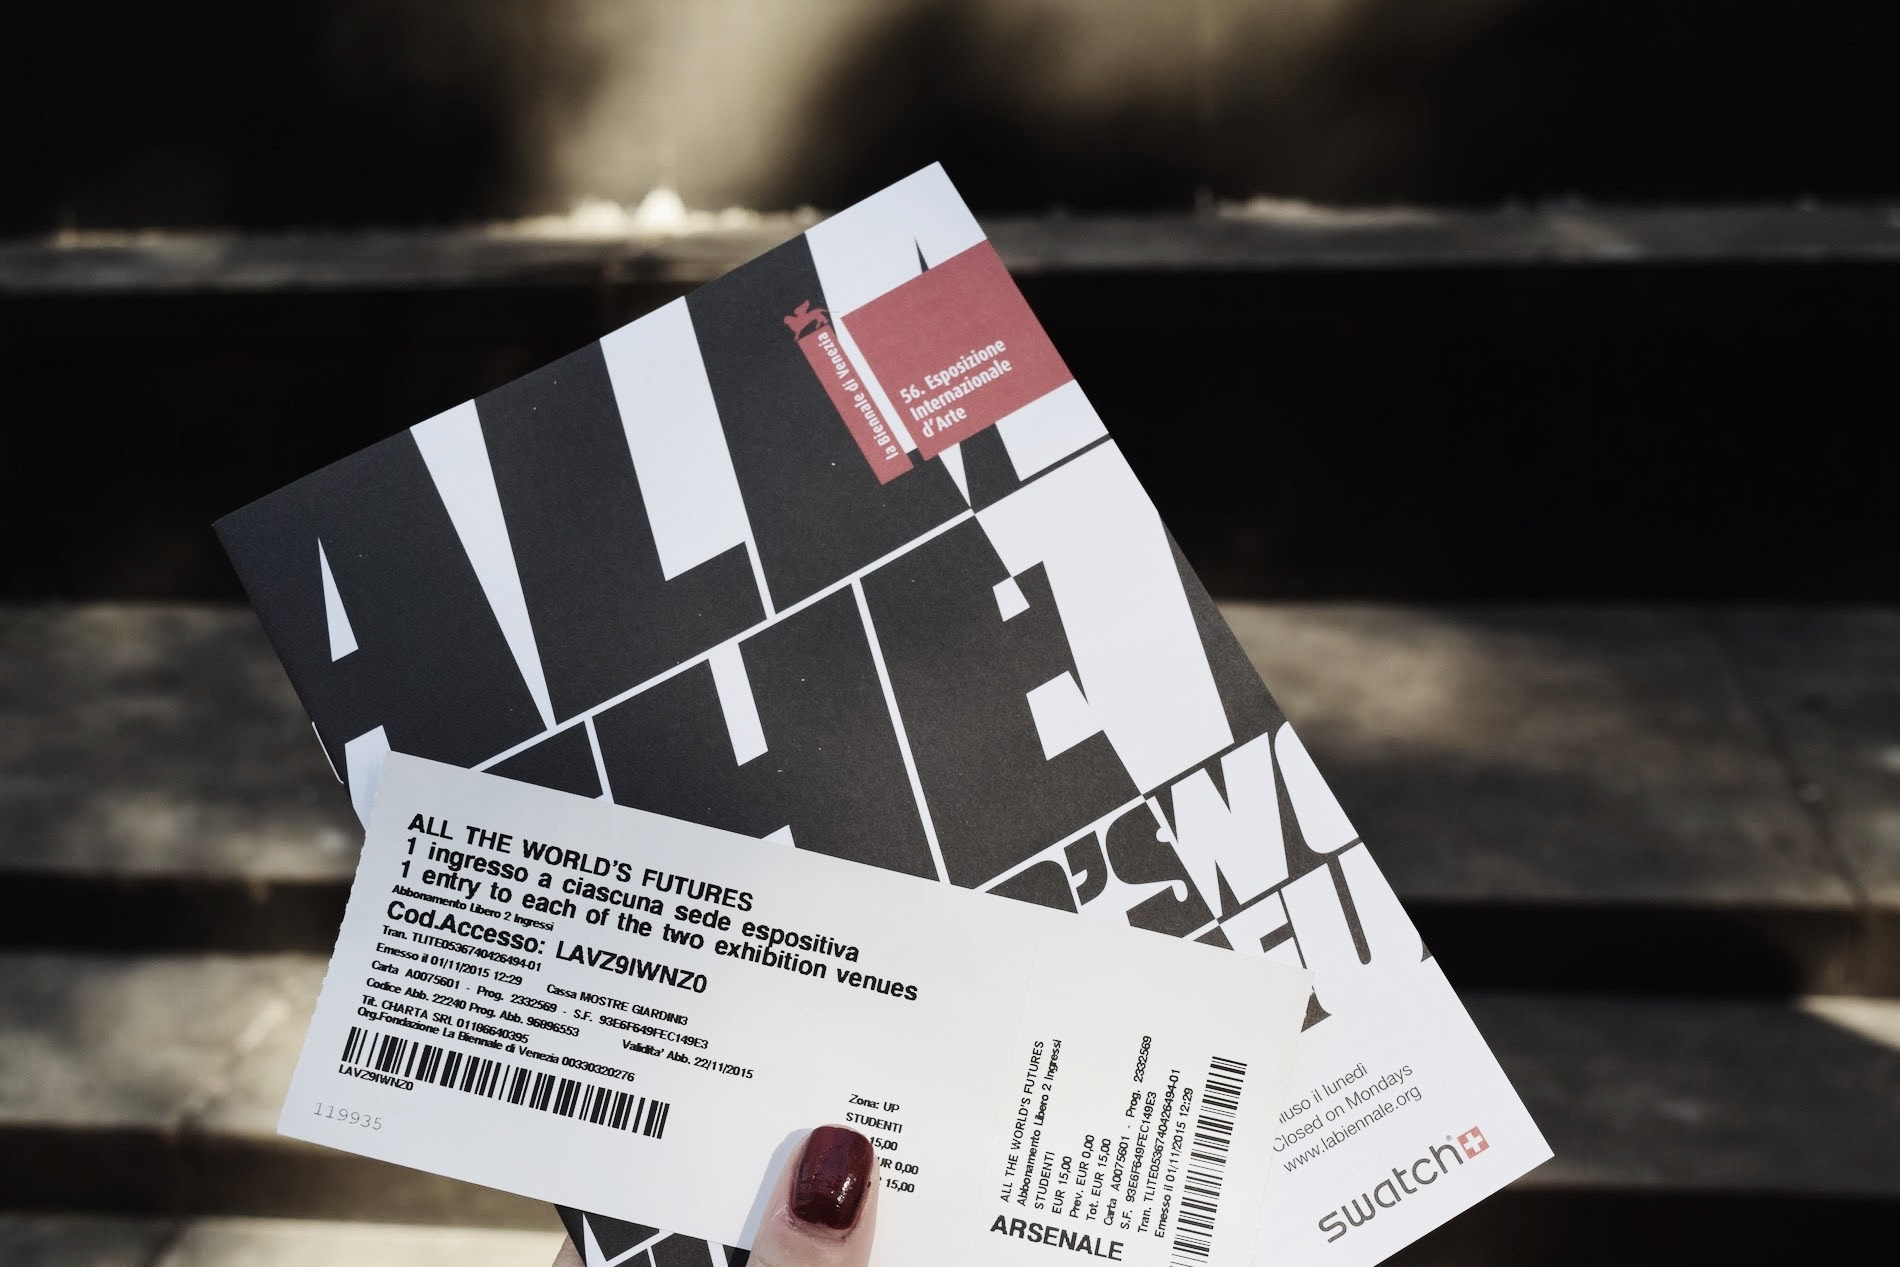 Venice Biennale Tickets and Guide